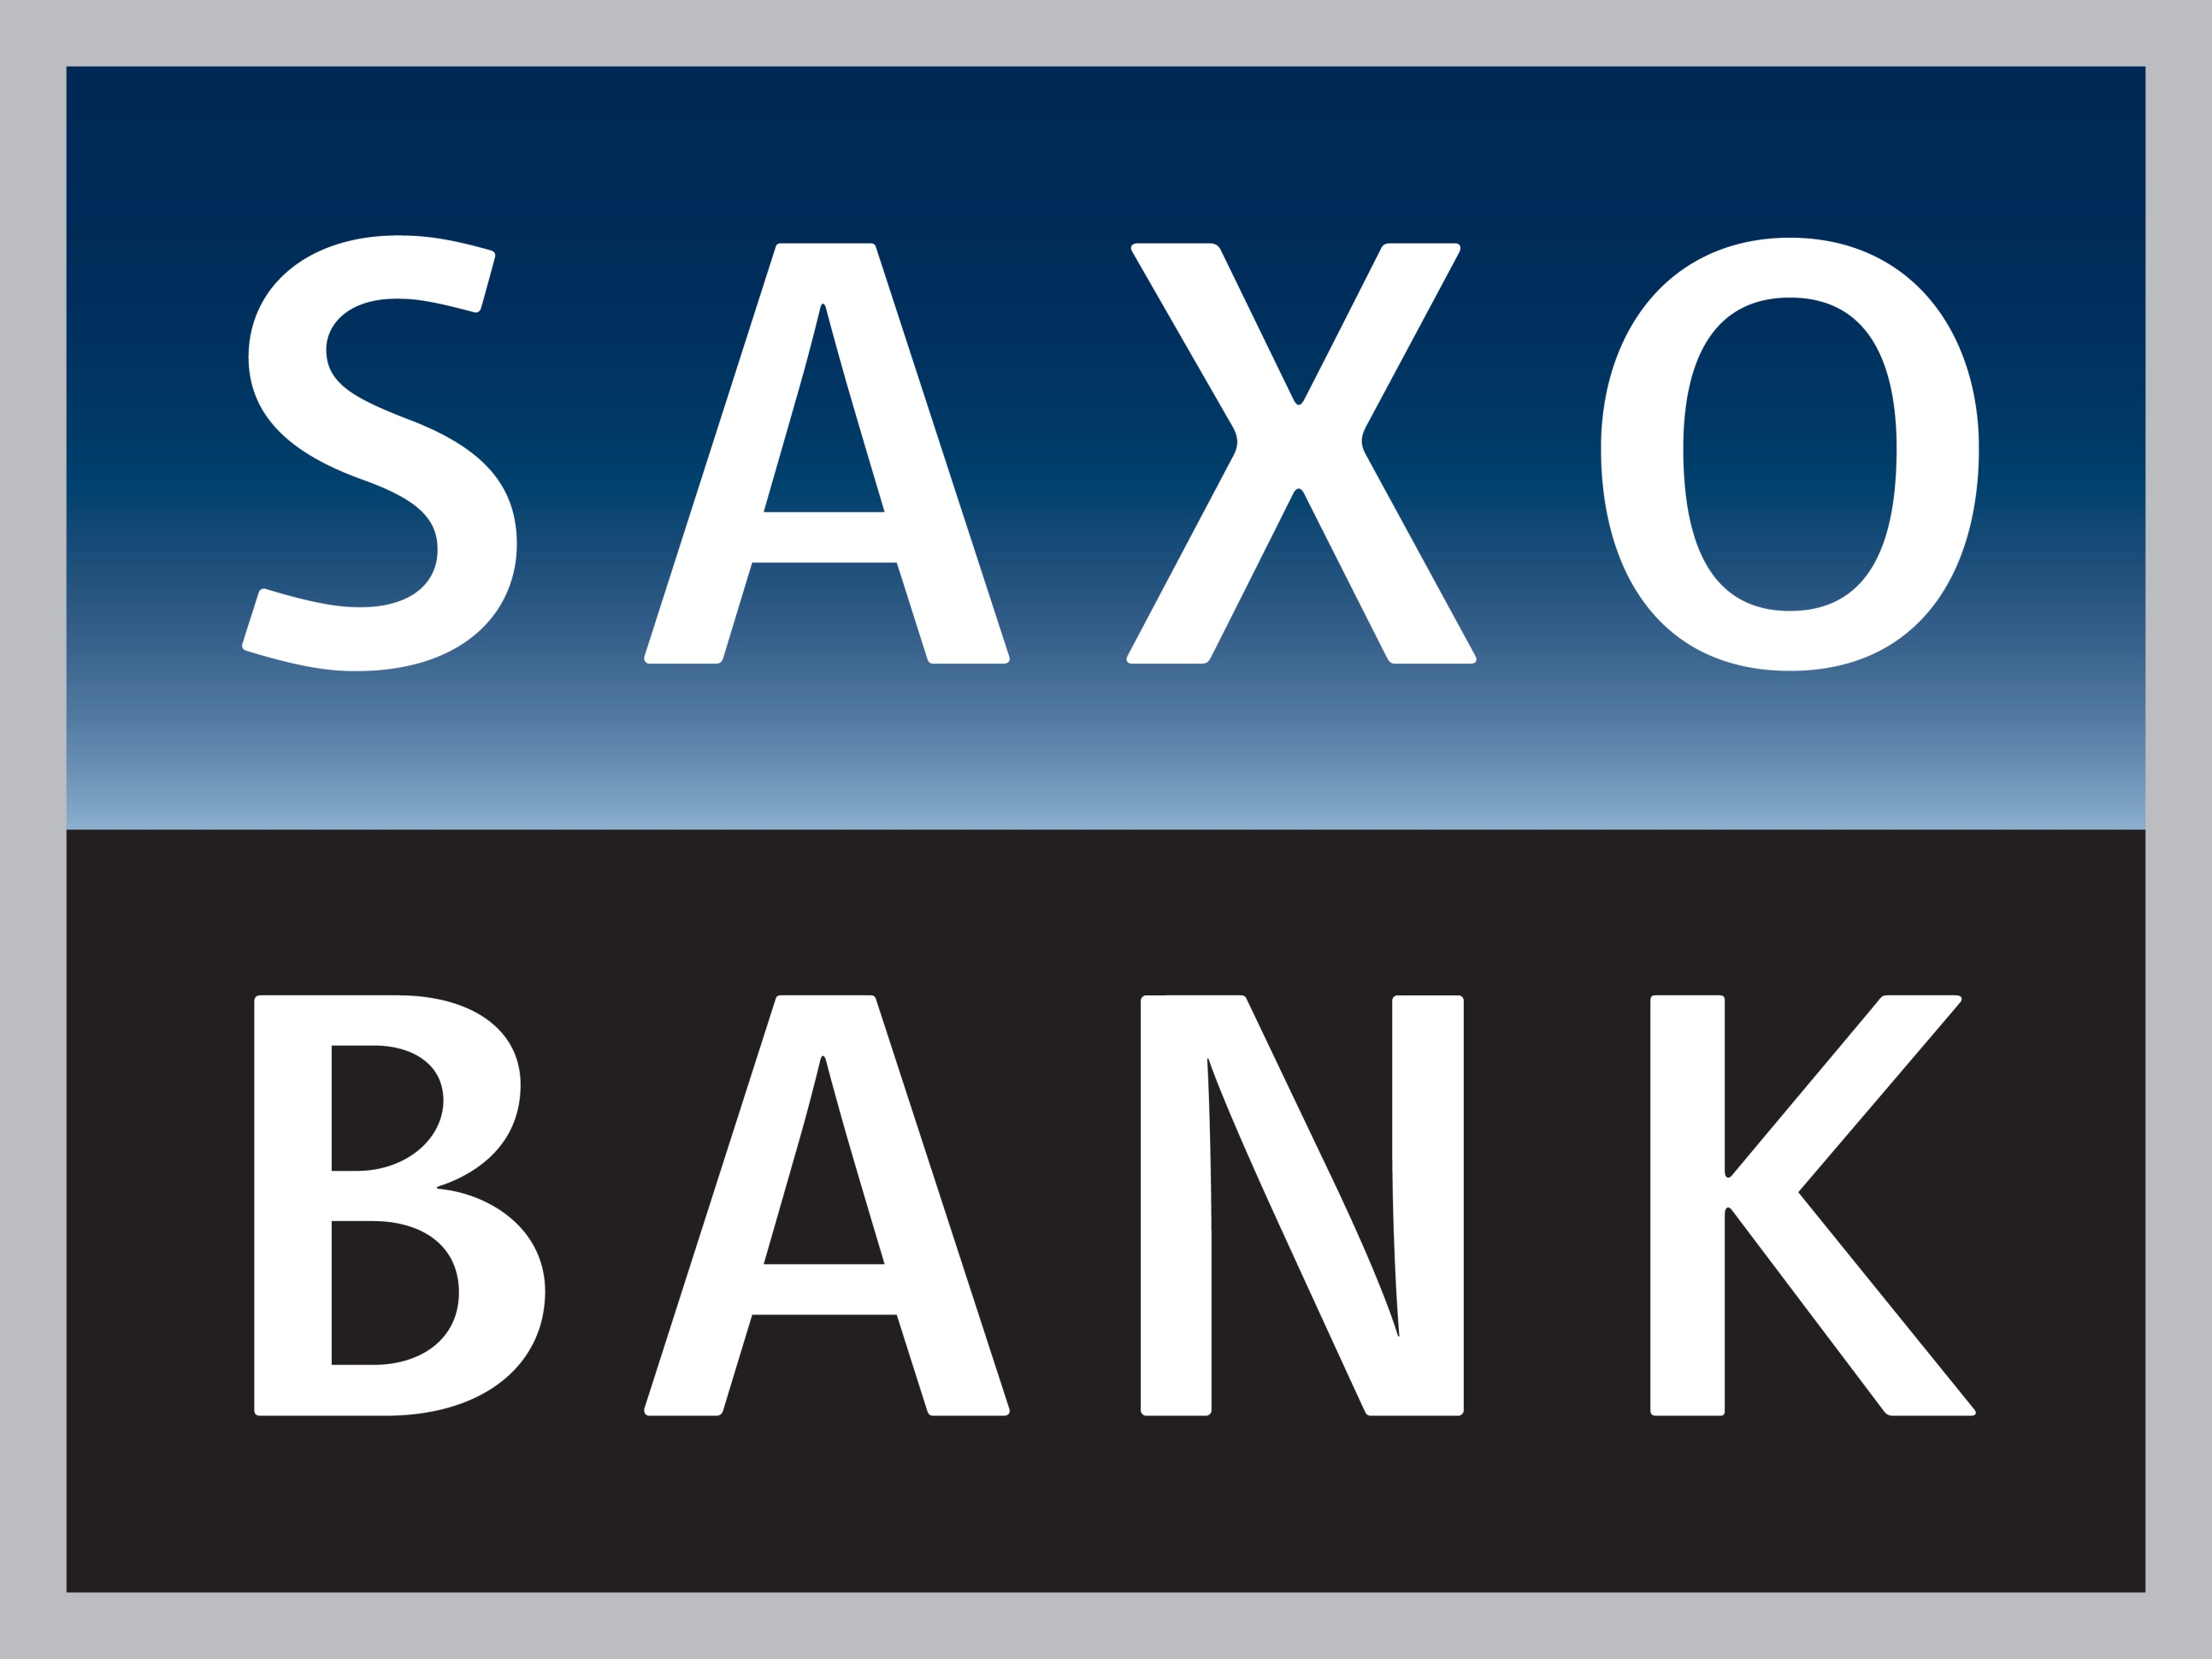 Saxo Bank completes acquisition of BinckBank